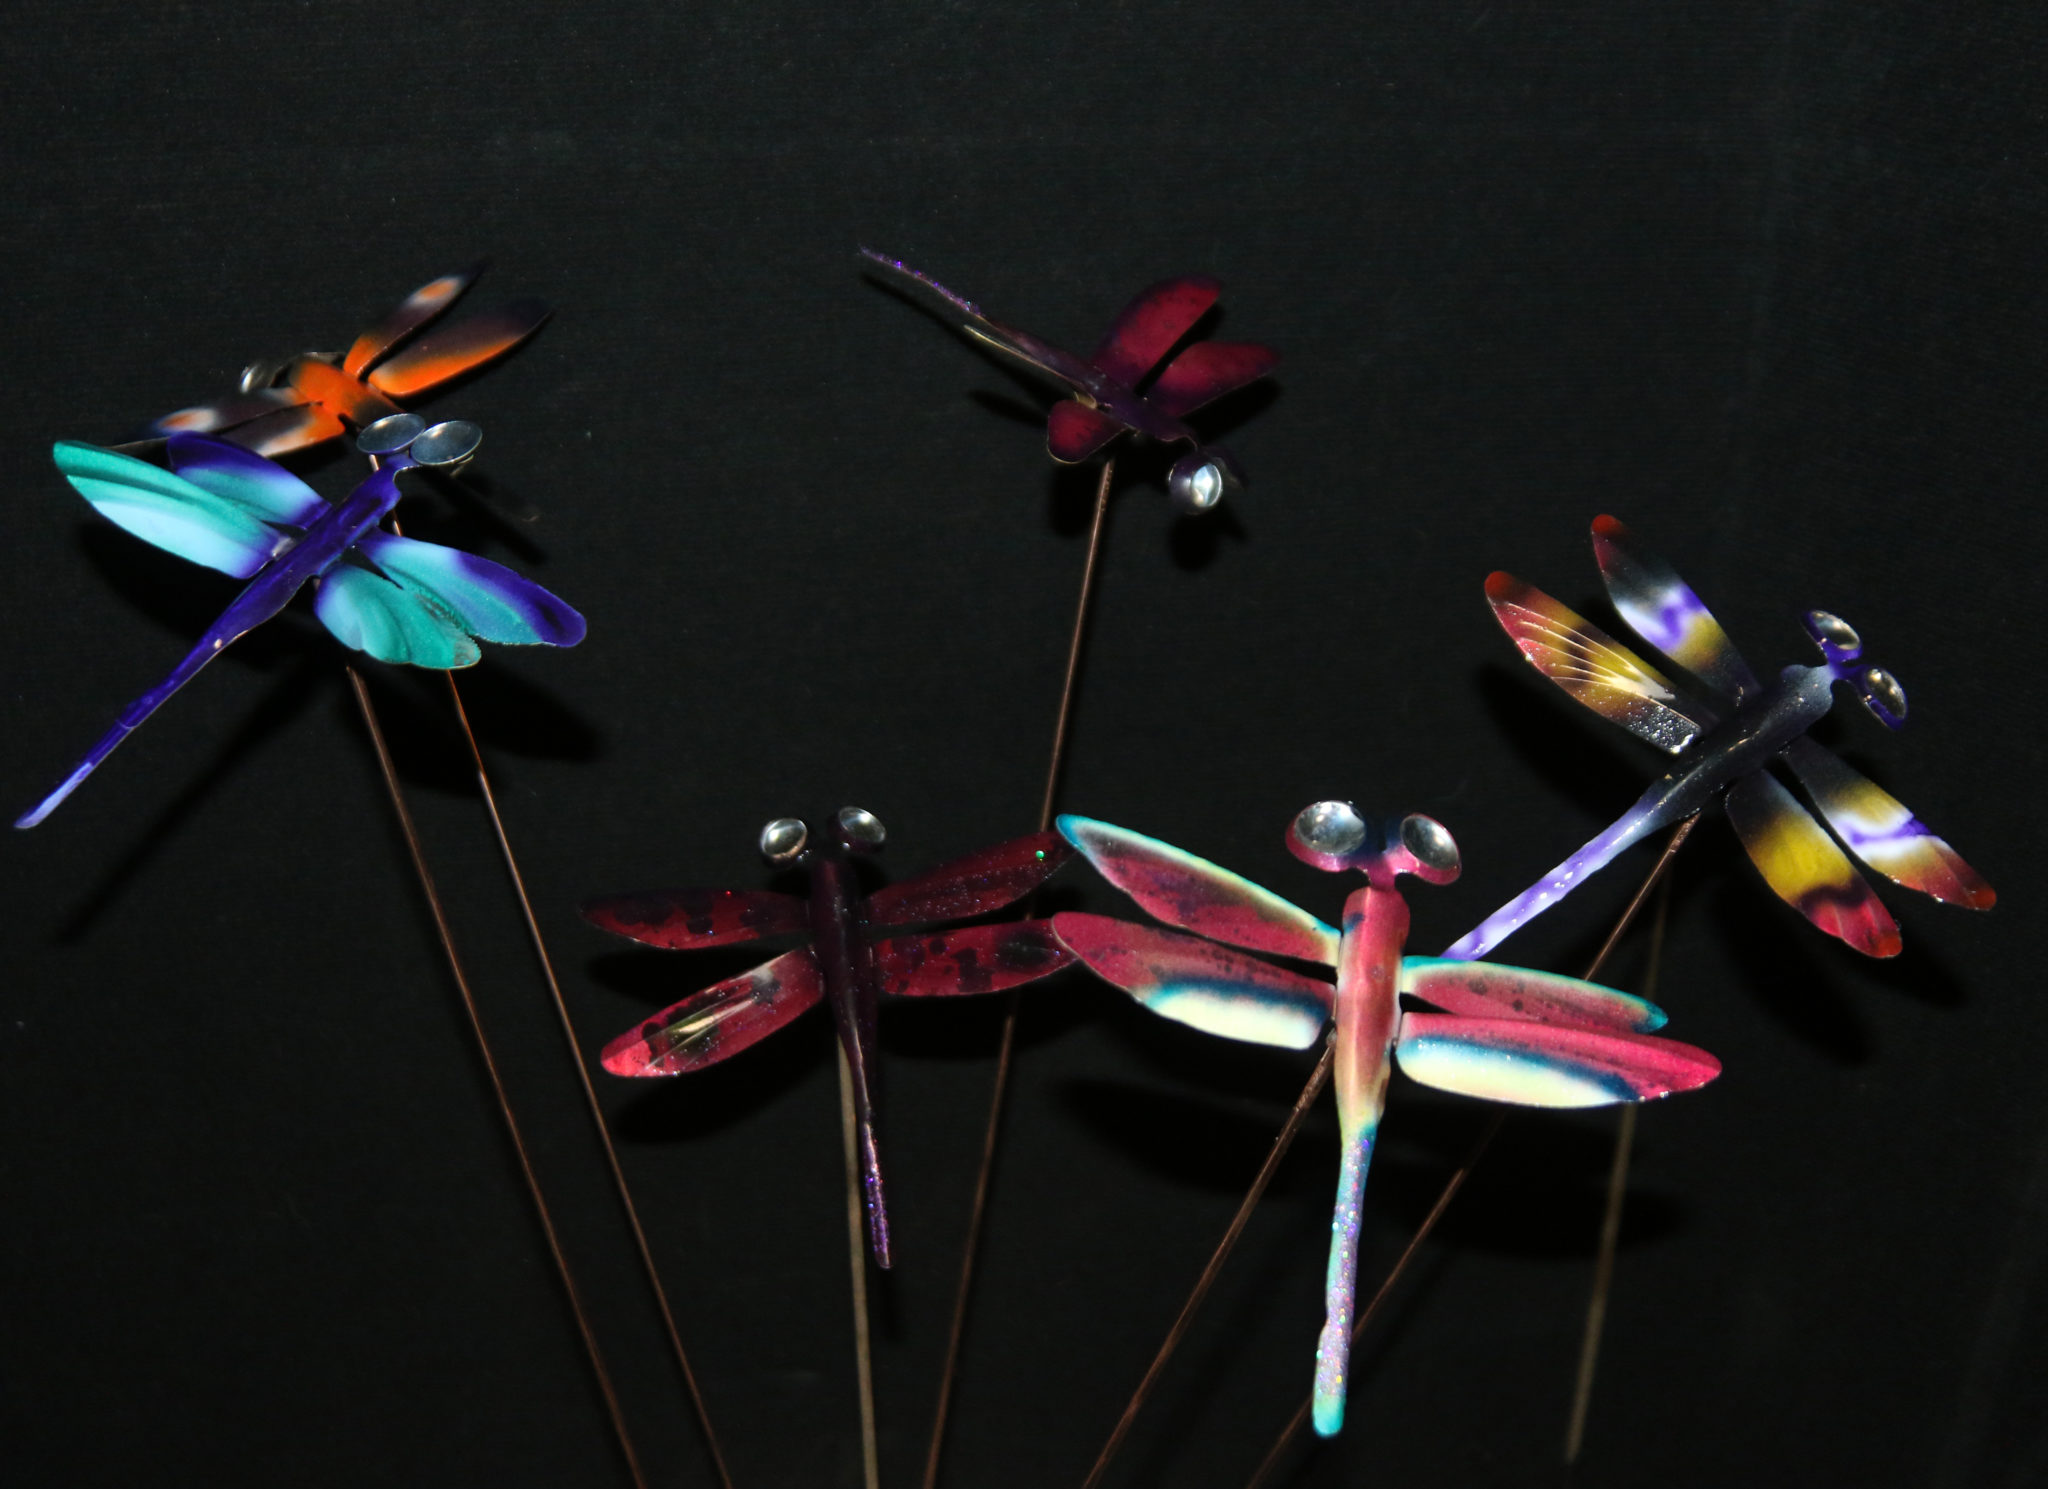 Dragonflies by Ray Berger